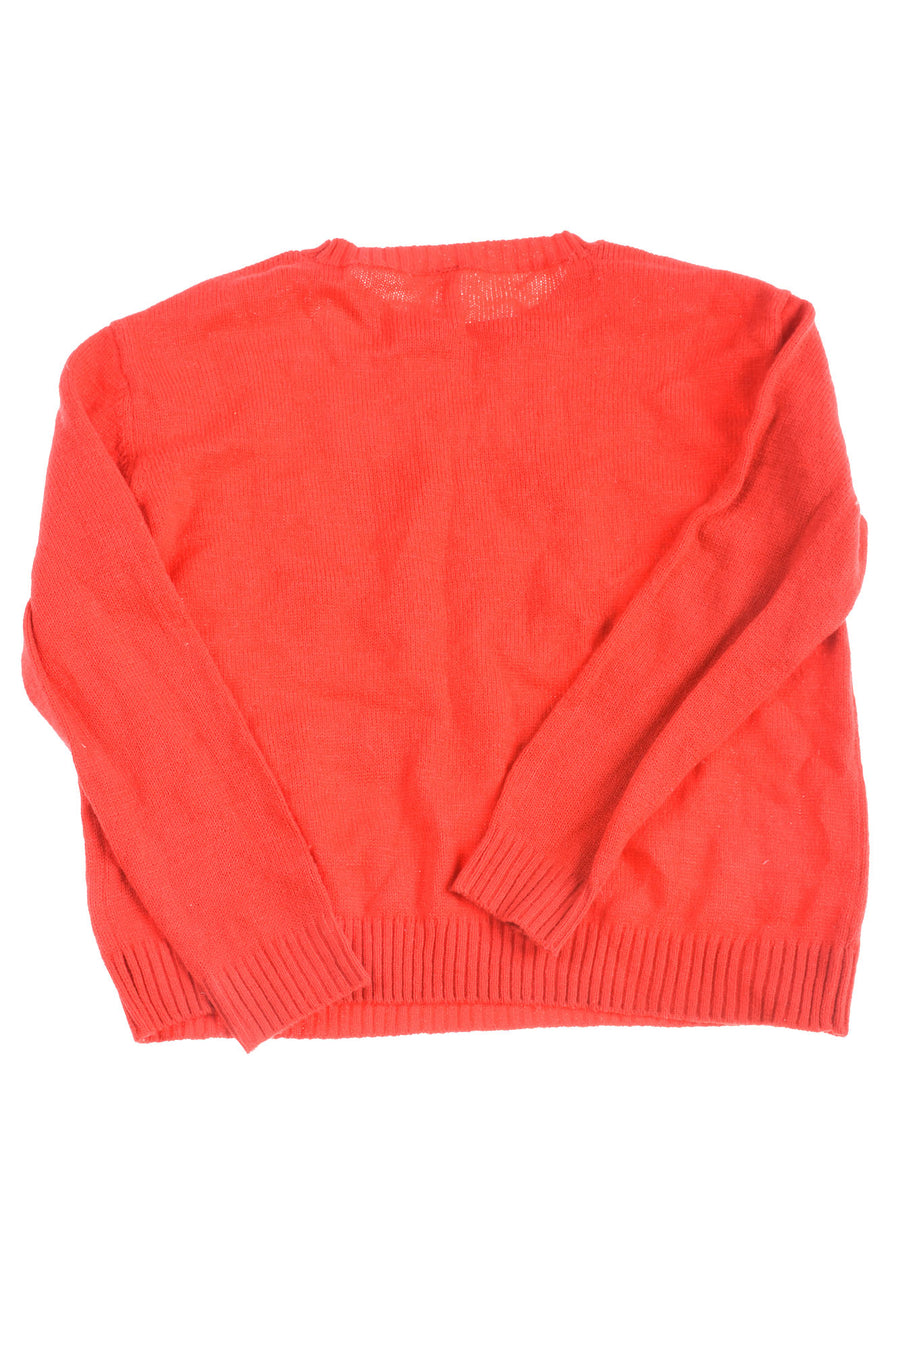 USED Divided By H&M Women's Sweater Medium Red